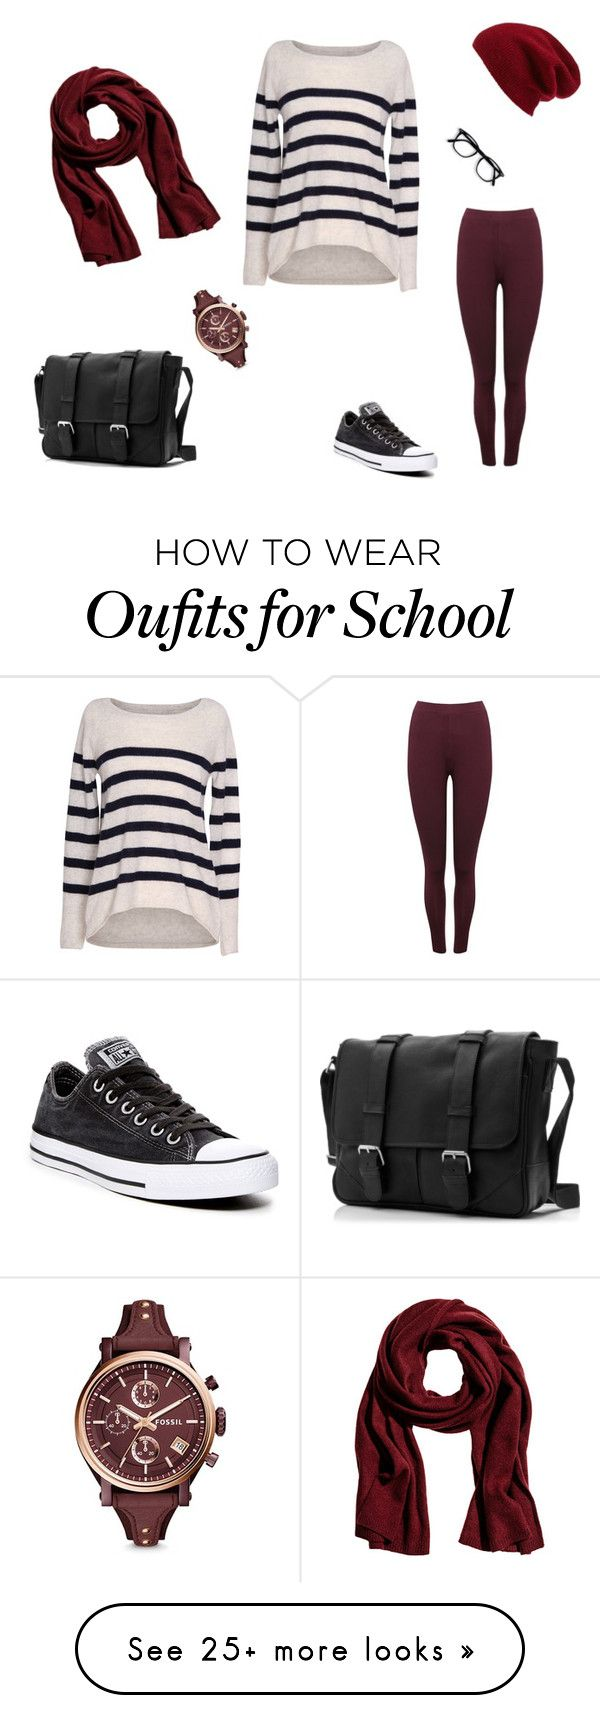 """""""Black and white and red all over"""" by barcelosknows on Polyvore featuring M&Co, Velvet by Graham & Spencer, Converse, FOSSIL and Halogen"""